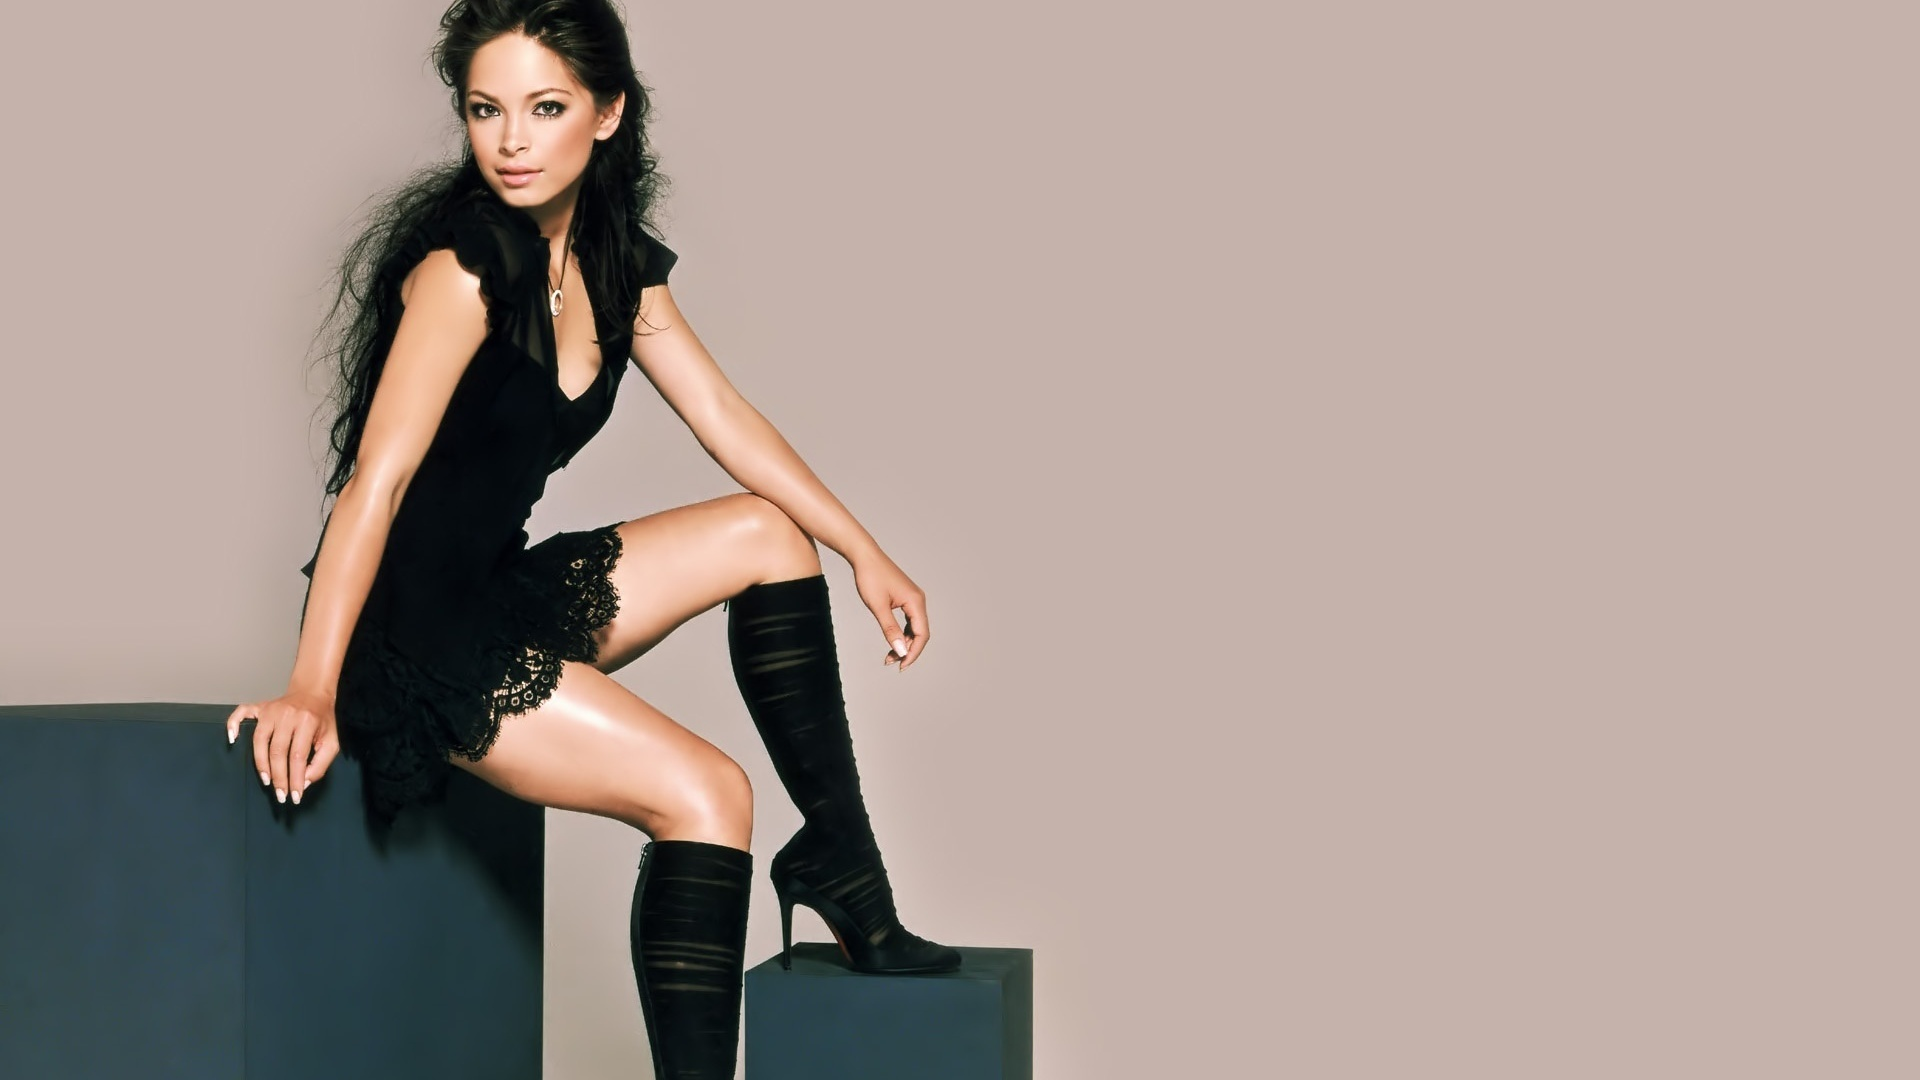 Hot Kristin Kreuk HD wallpapers